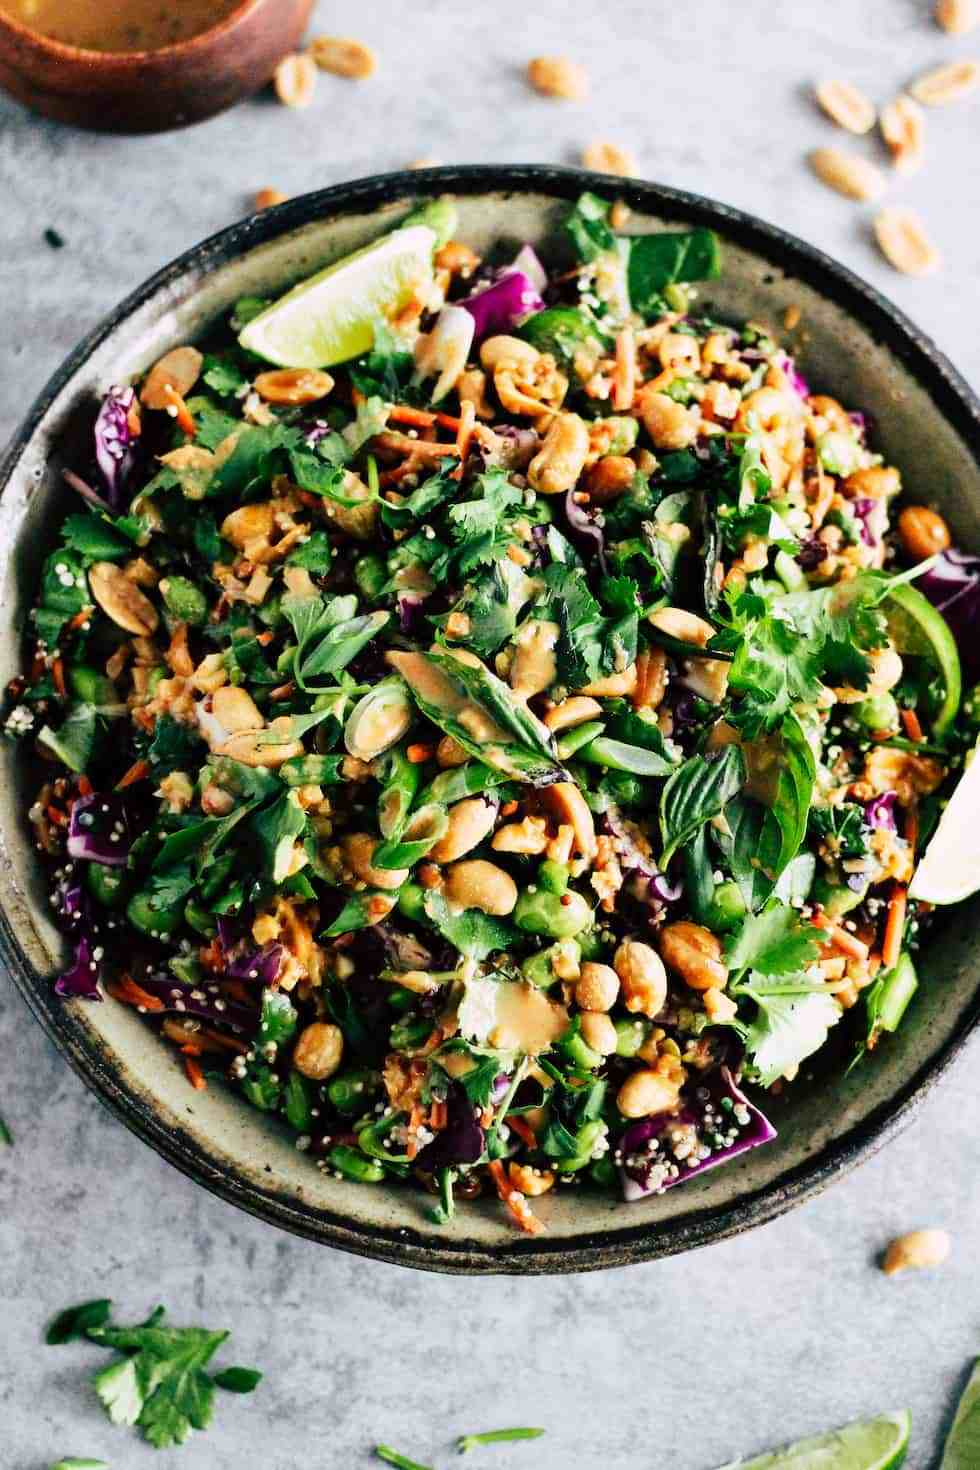 Ceramic Bowl of Easy Edamame Crunch Salad is number one on list of Most Popular Vegetarian Recipes.